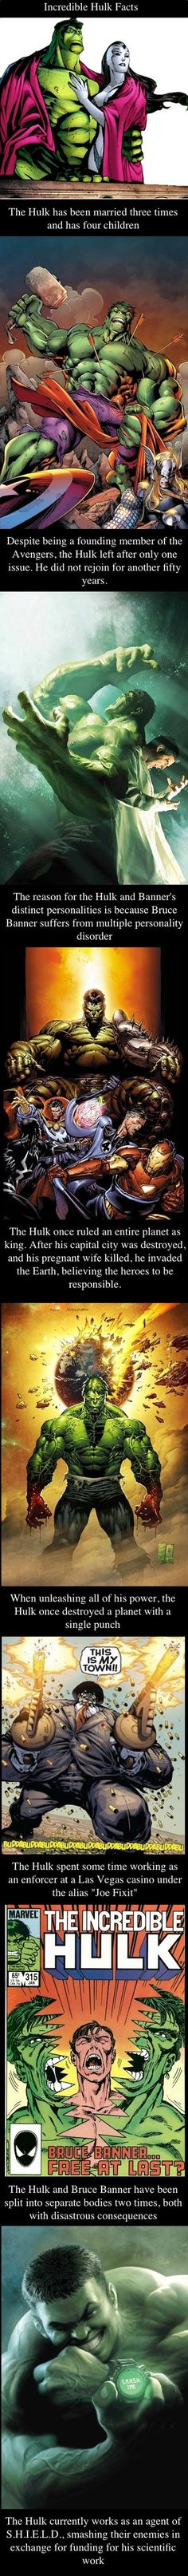 Incredible Hulk Facts.